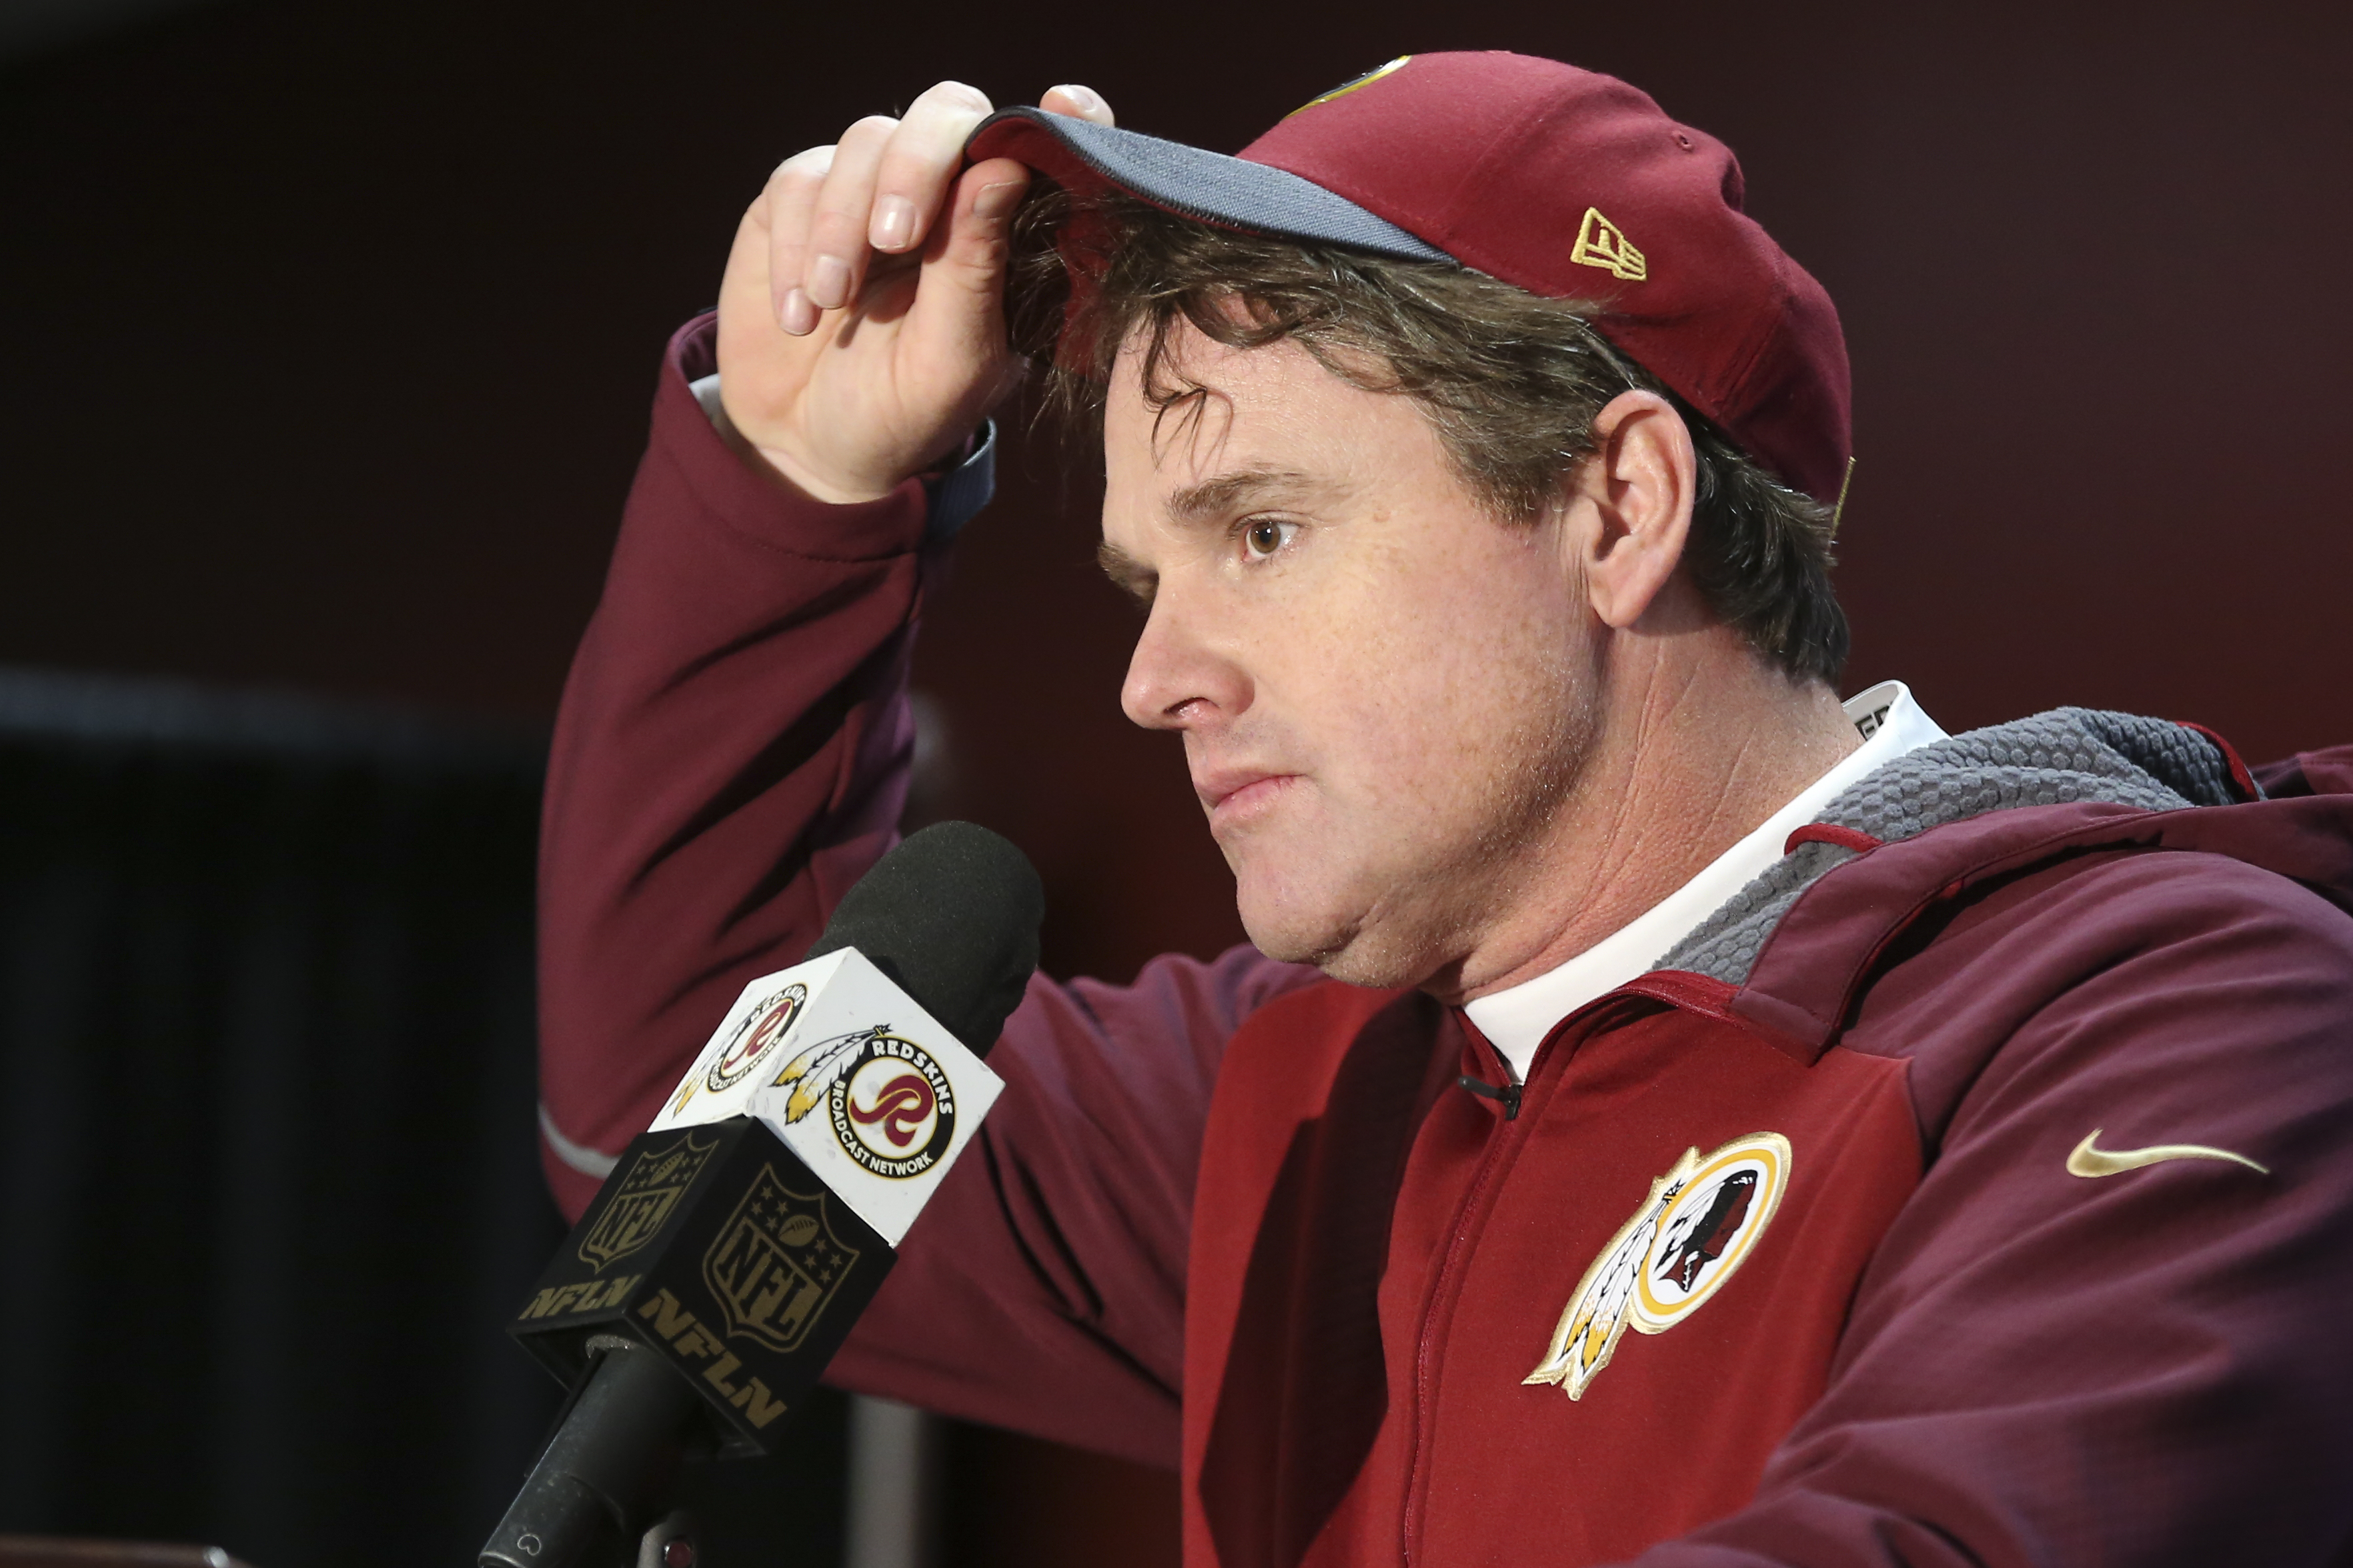 In this Dec. 20, 2015, photo, Washington Redskins head coach Jay Gruden pulls on his cap during a post-game news conference after the NFL football game against the Buffalo Bills in Landover, Md., Sunday, Dec. 20, 2015. The Washington Redskins defeated the